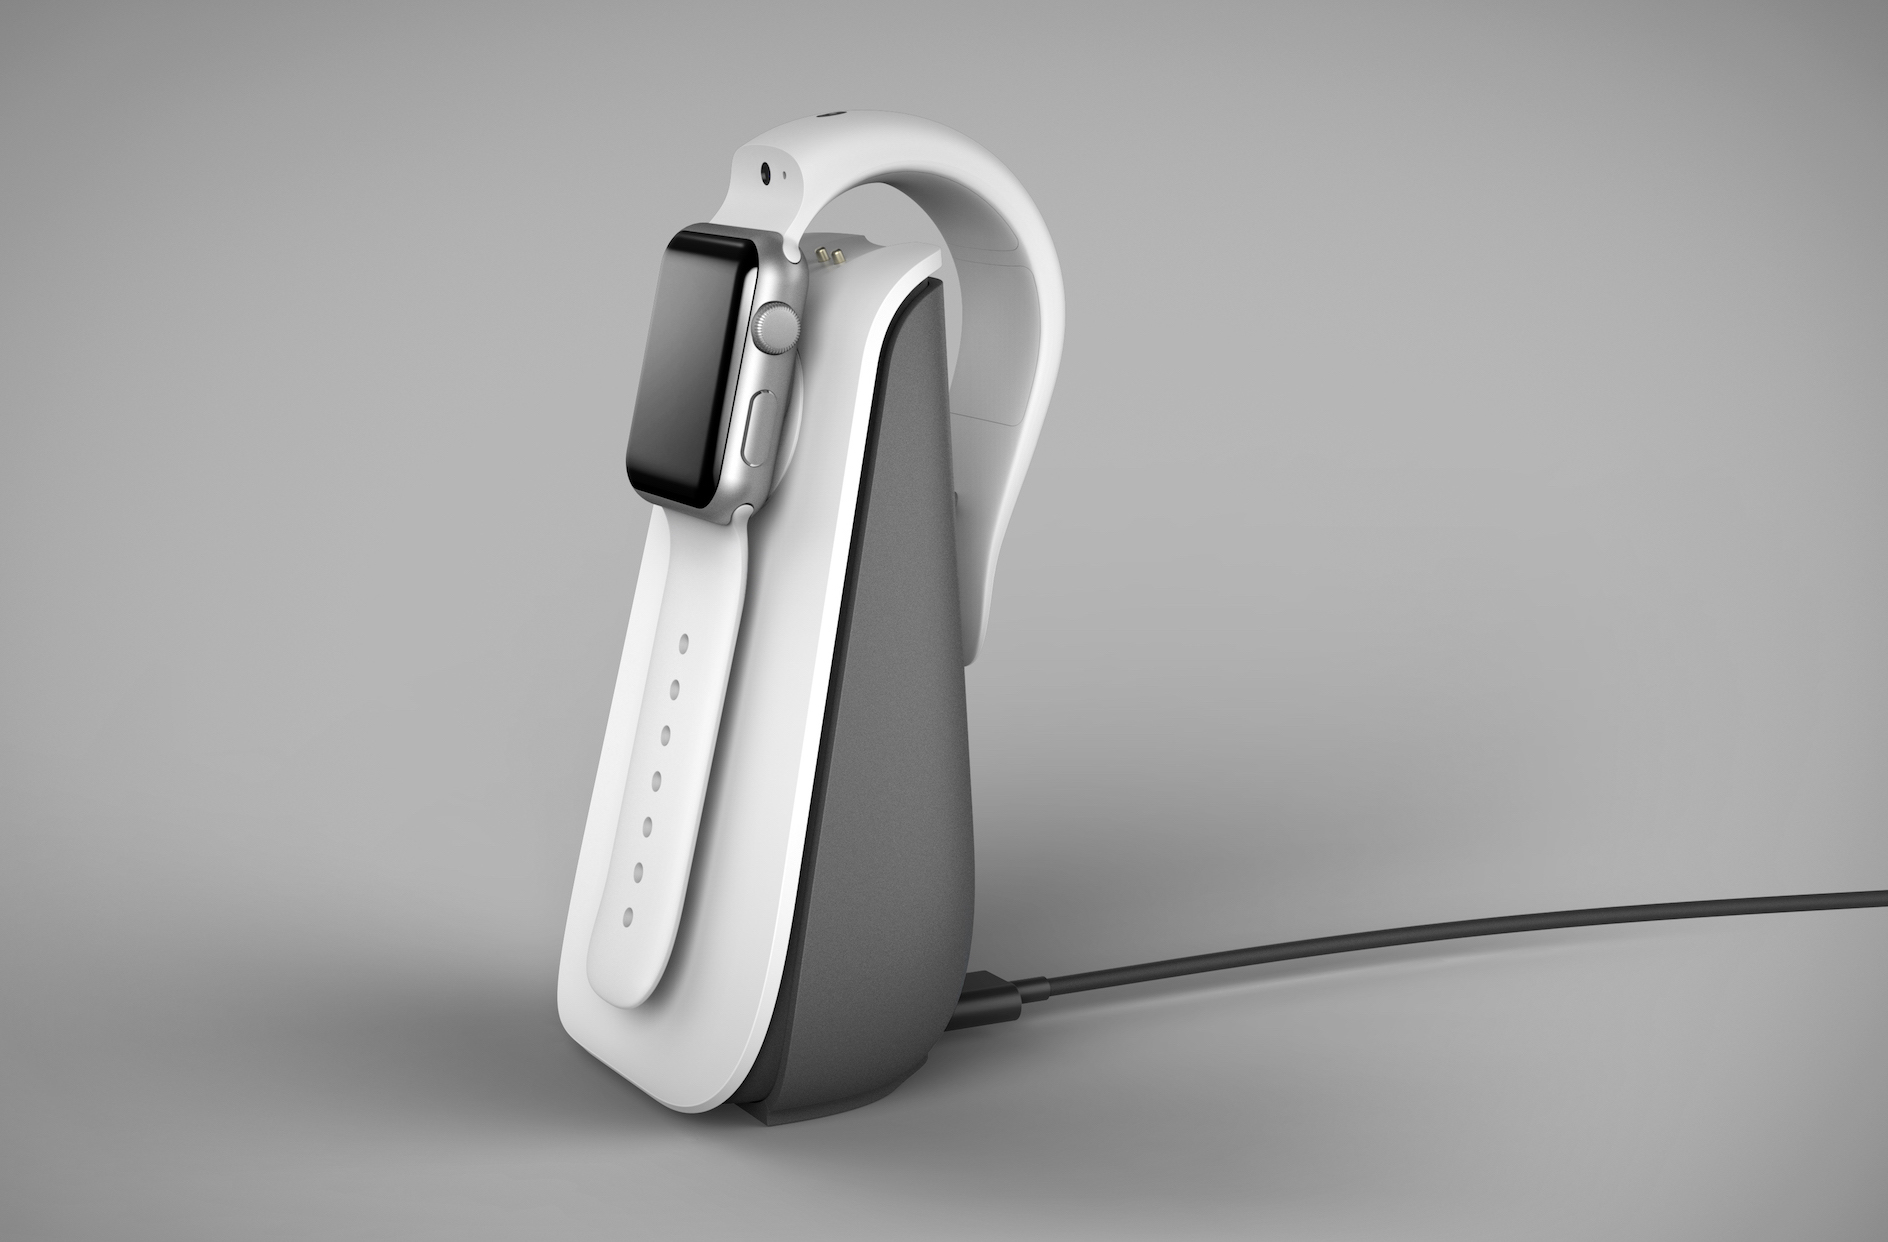 CMRA Charger Also Charges Apple Watch